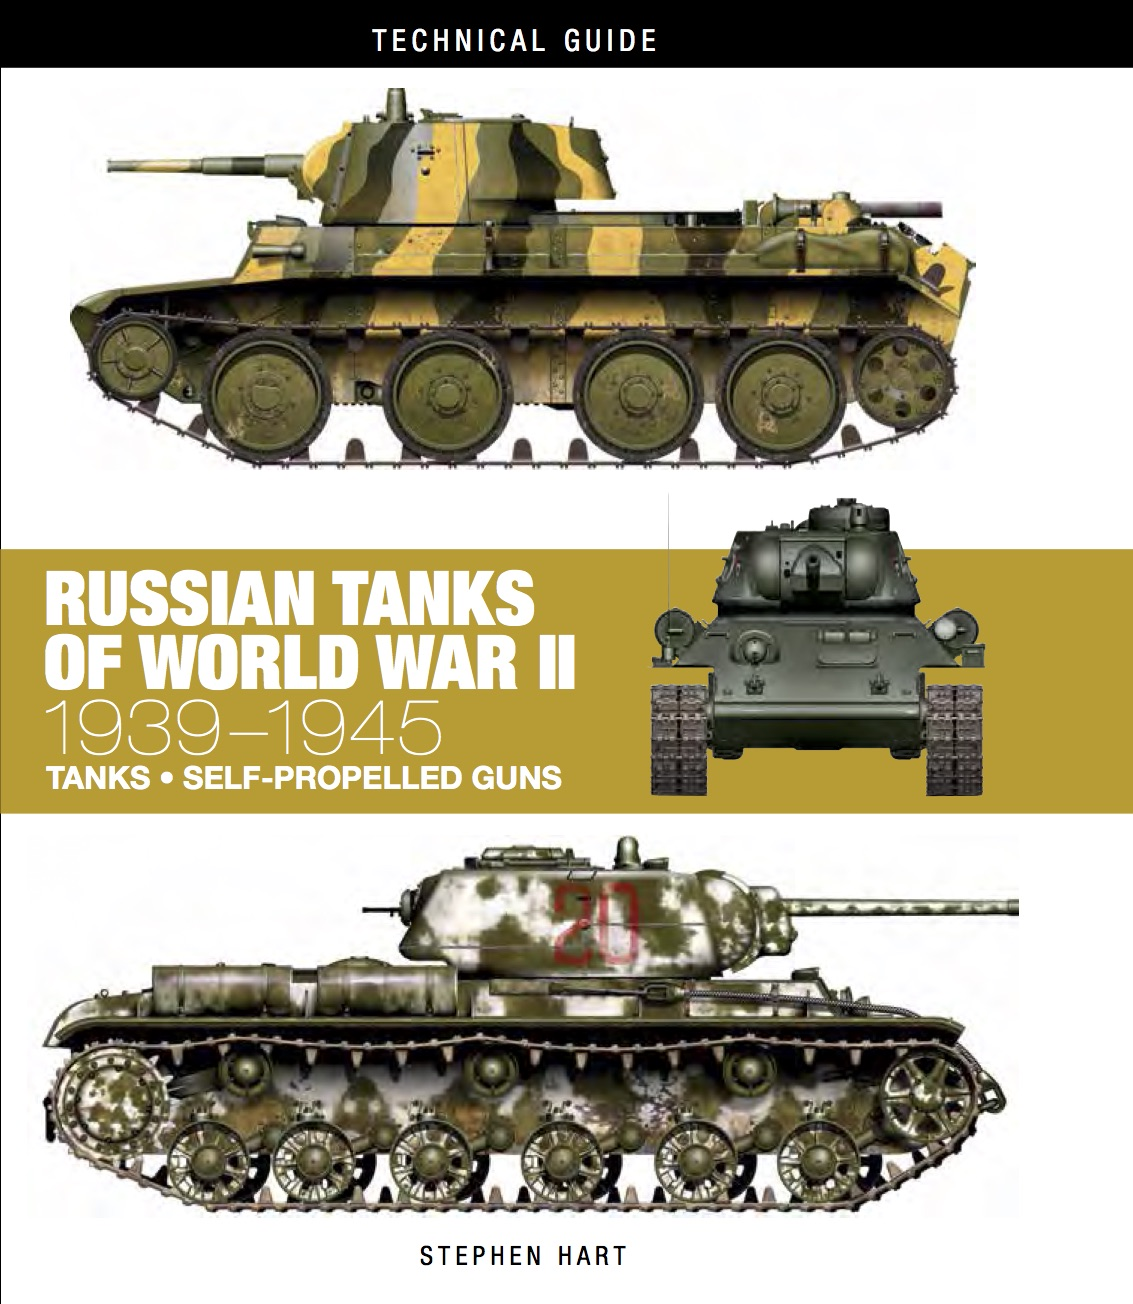 Technical Guide: Russian Tanks of World War II